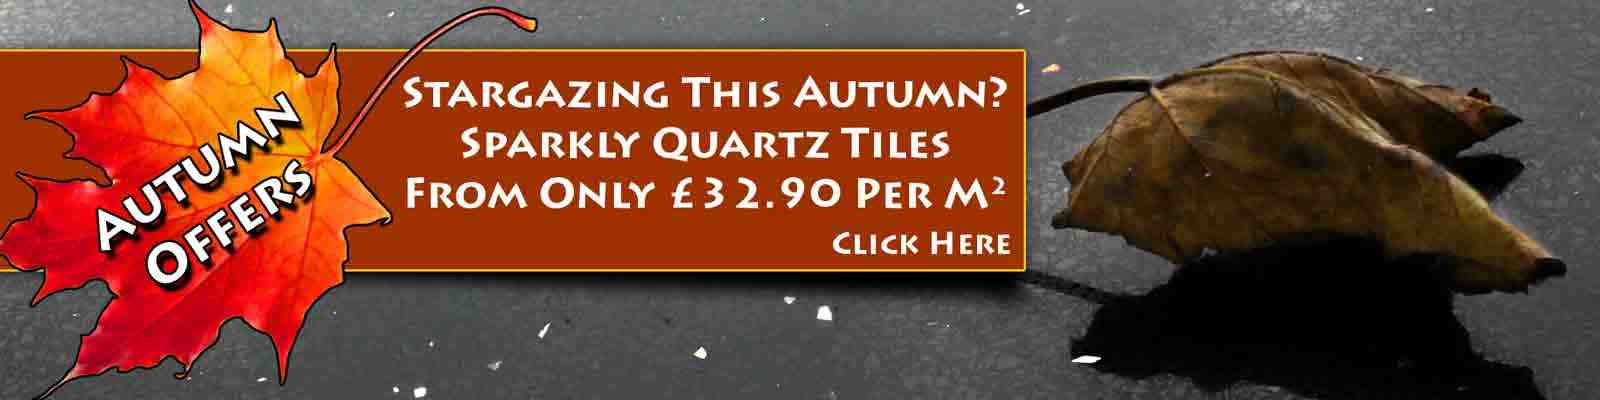 September Deals - Autumn Offers on Quartz Tiles